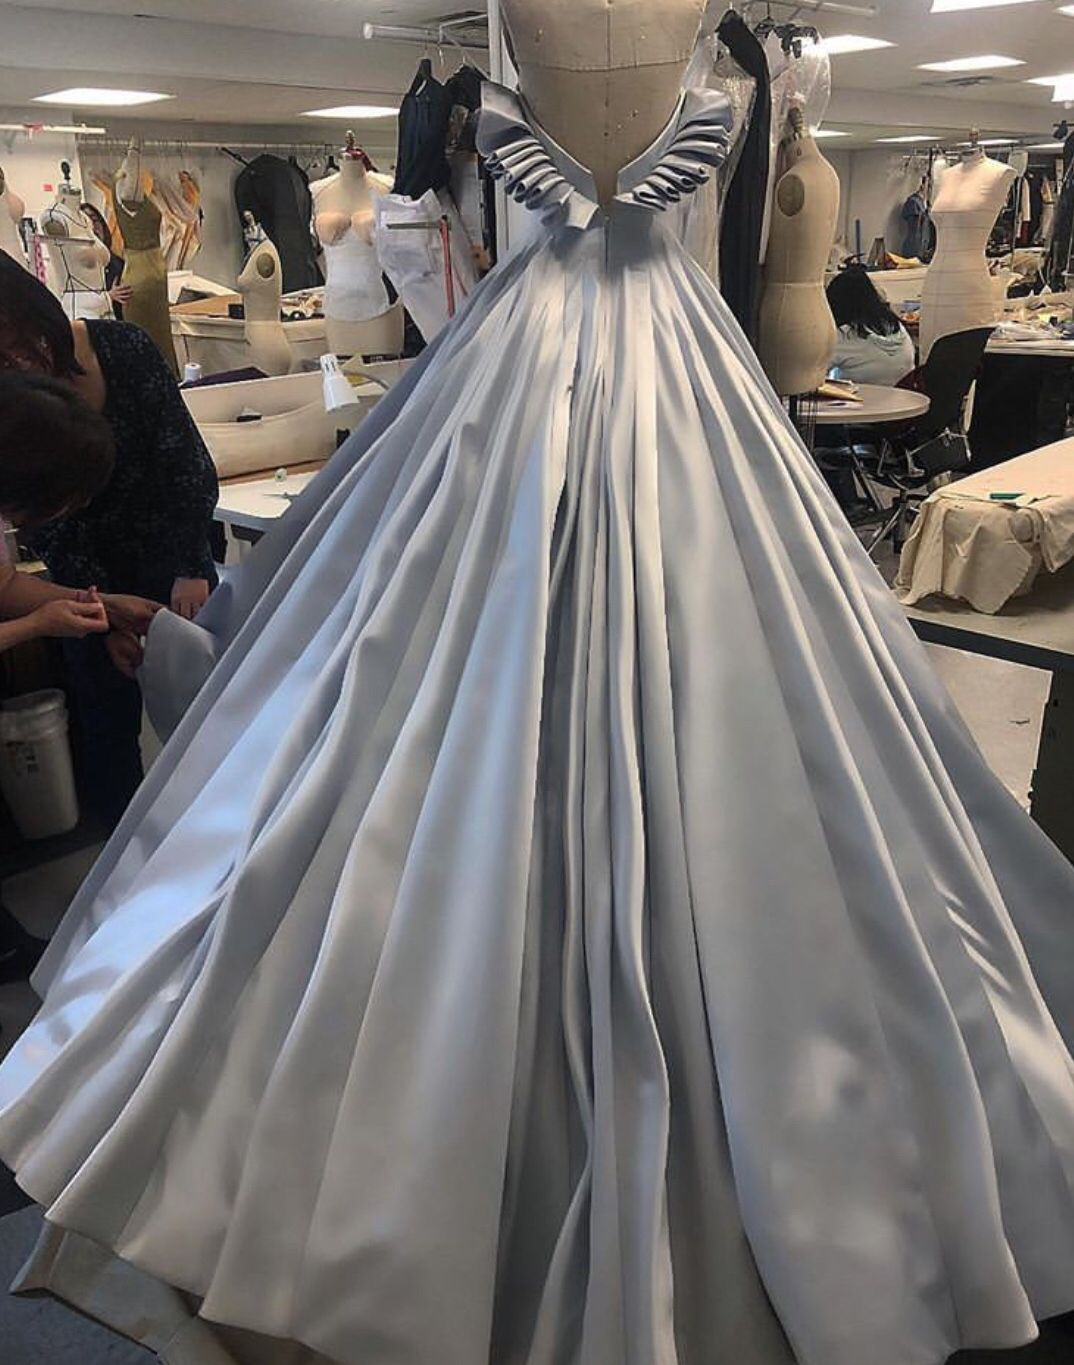 zac posen 2019 grammy dresses iconic dresses quincenera dresses zac posen 2019 grammy dresses iconic